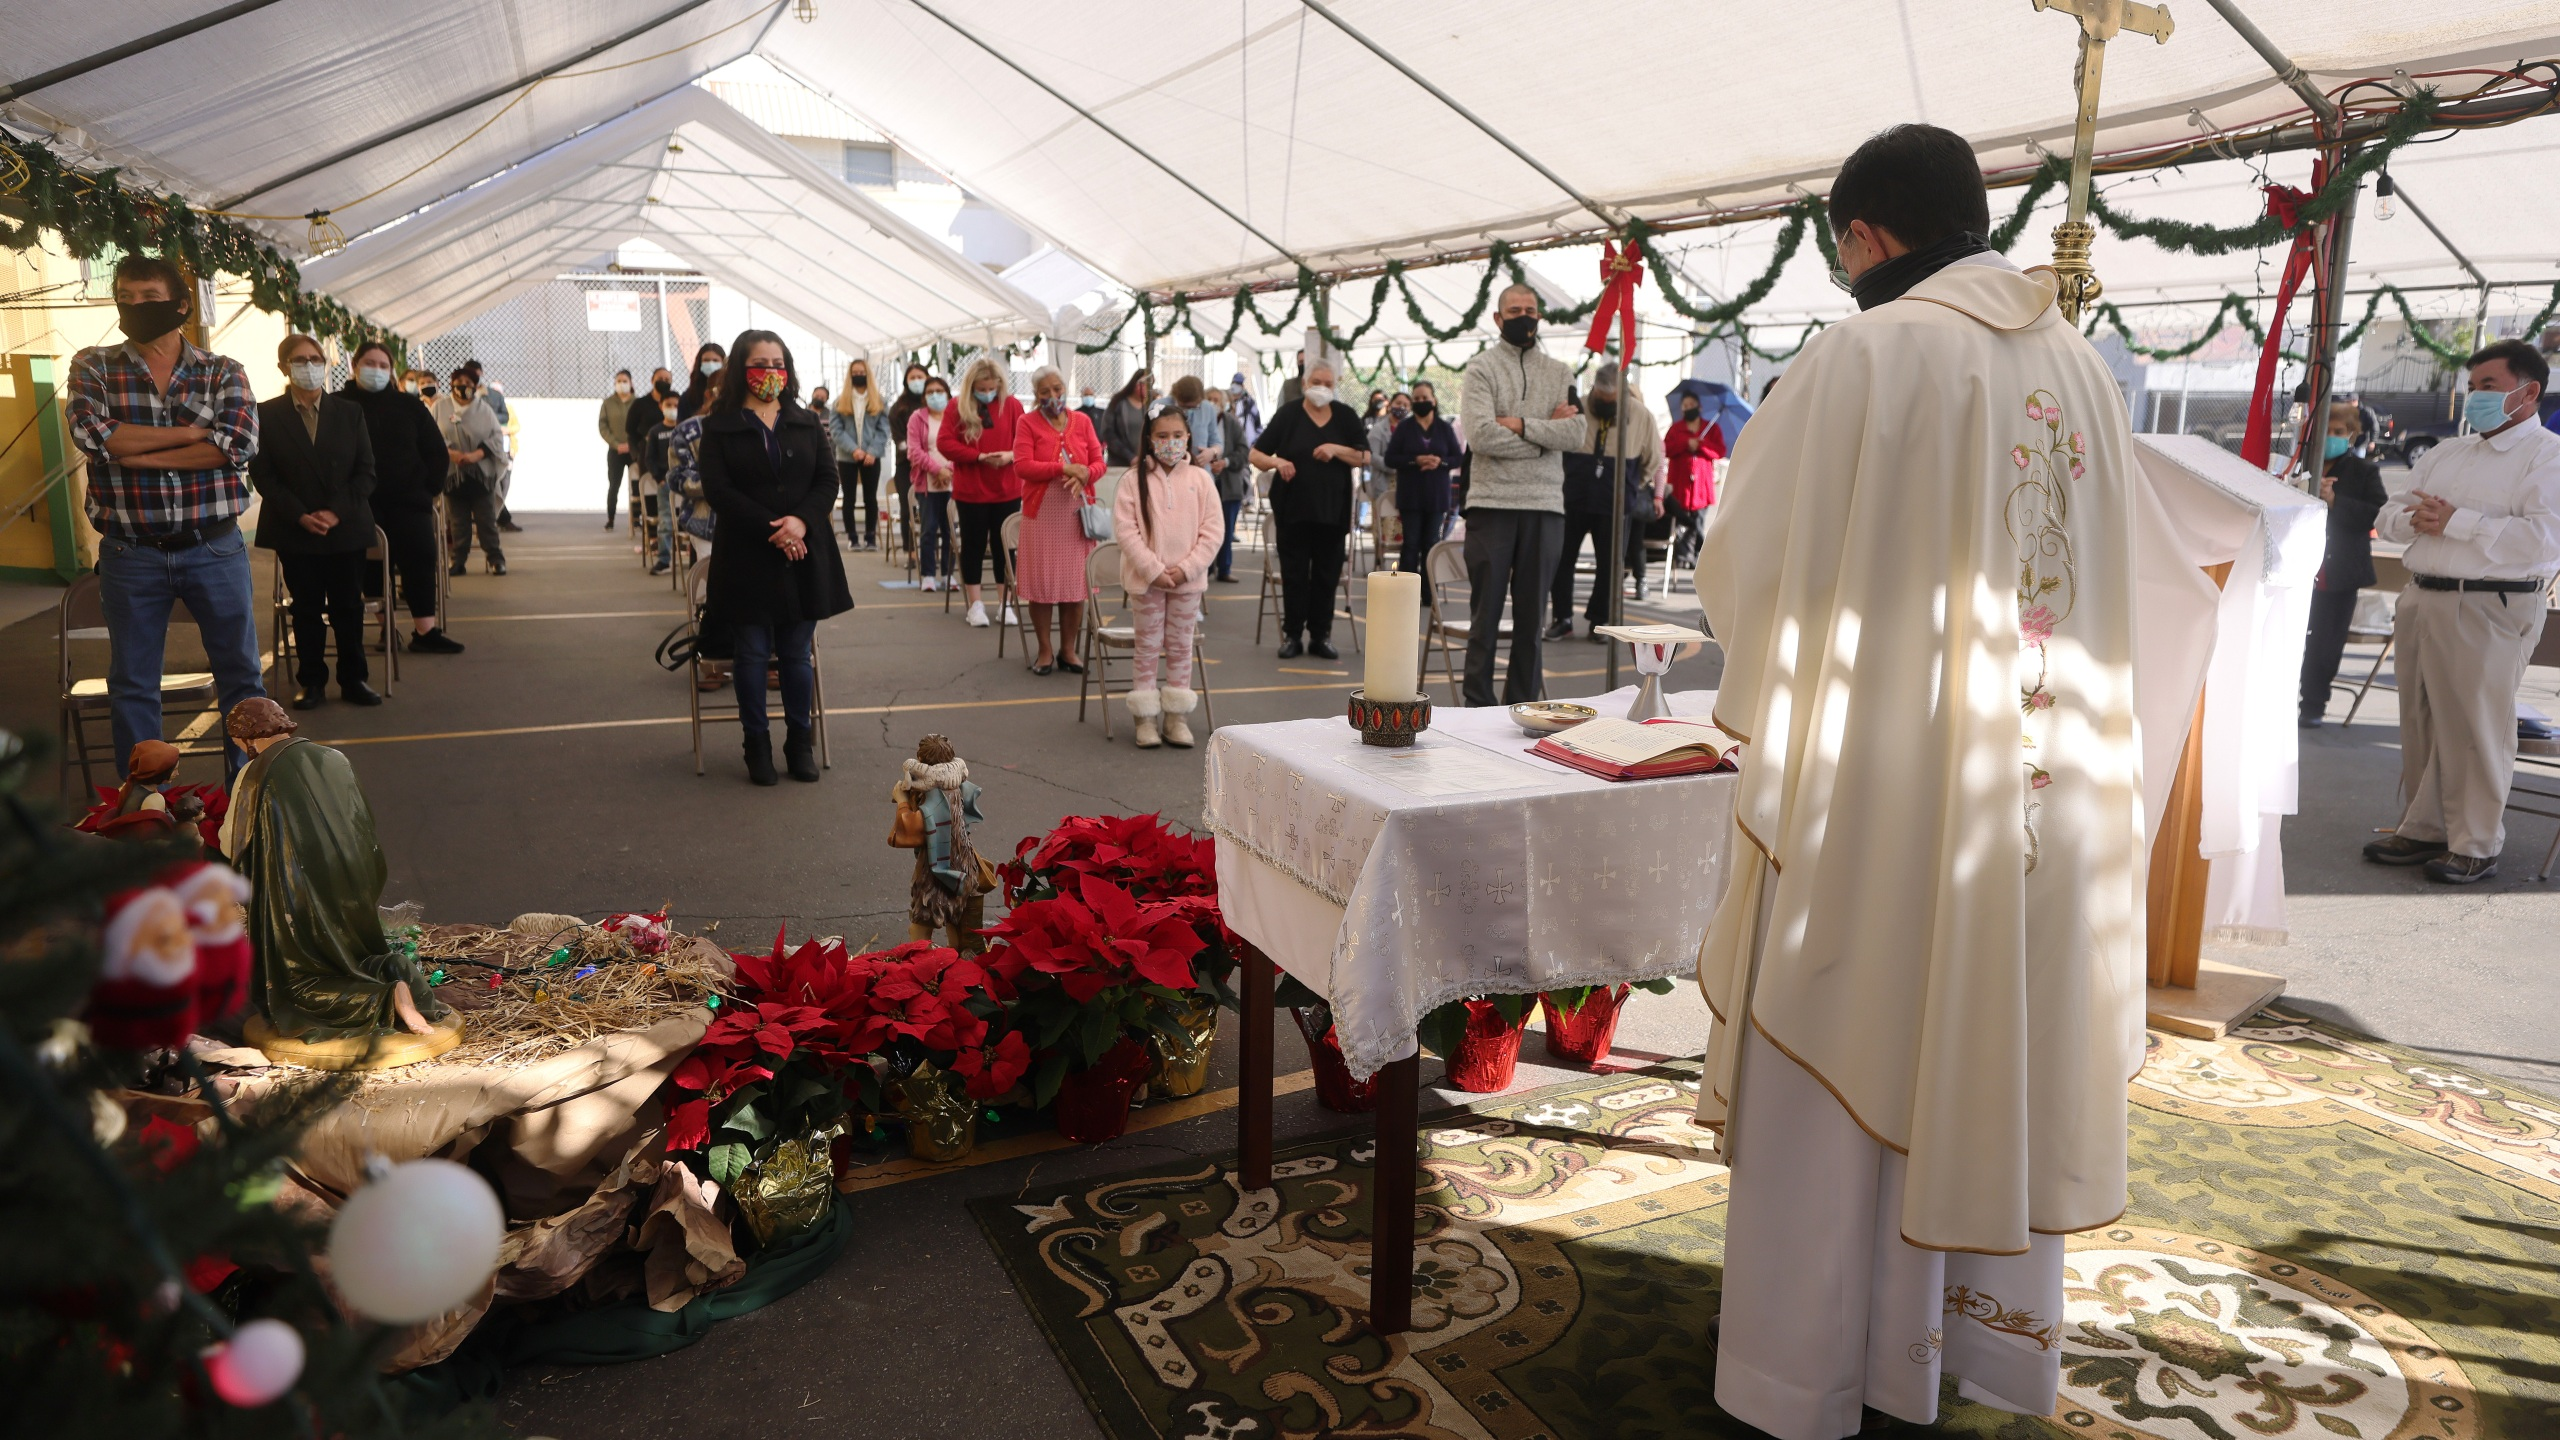 Father Rafael Saiz celebrates Christmas Mass outdoors at St. Mary's Catholic Church beneath a tent with social distancing due to the COVID-19 pandemic on December 25, 2020 in Los Angeles, California. (Mario Tama/Getty Images)